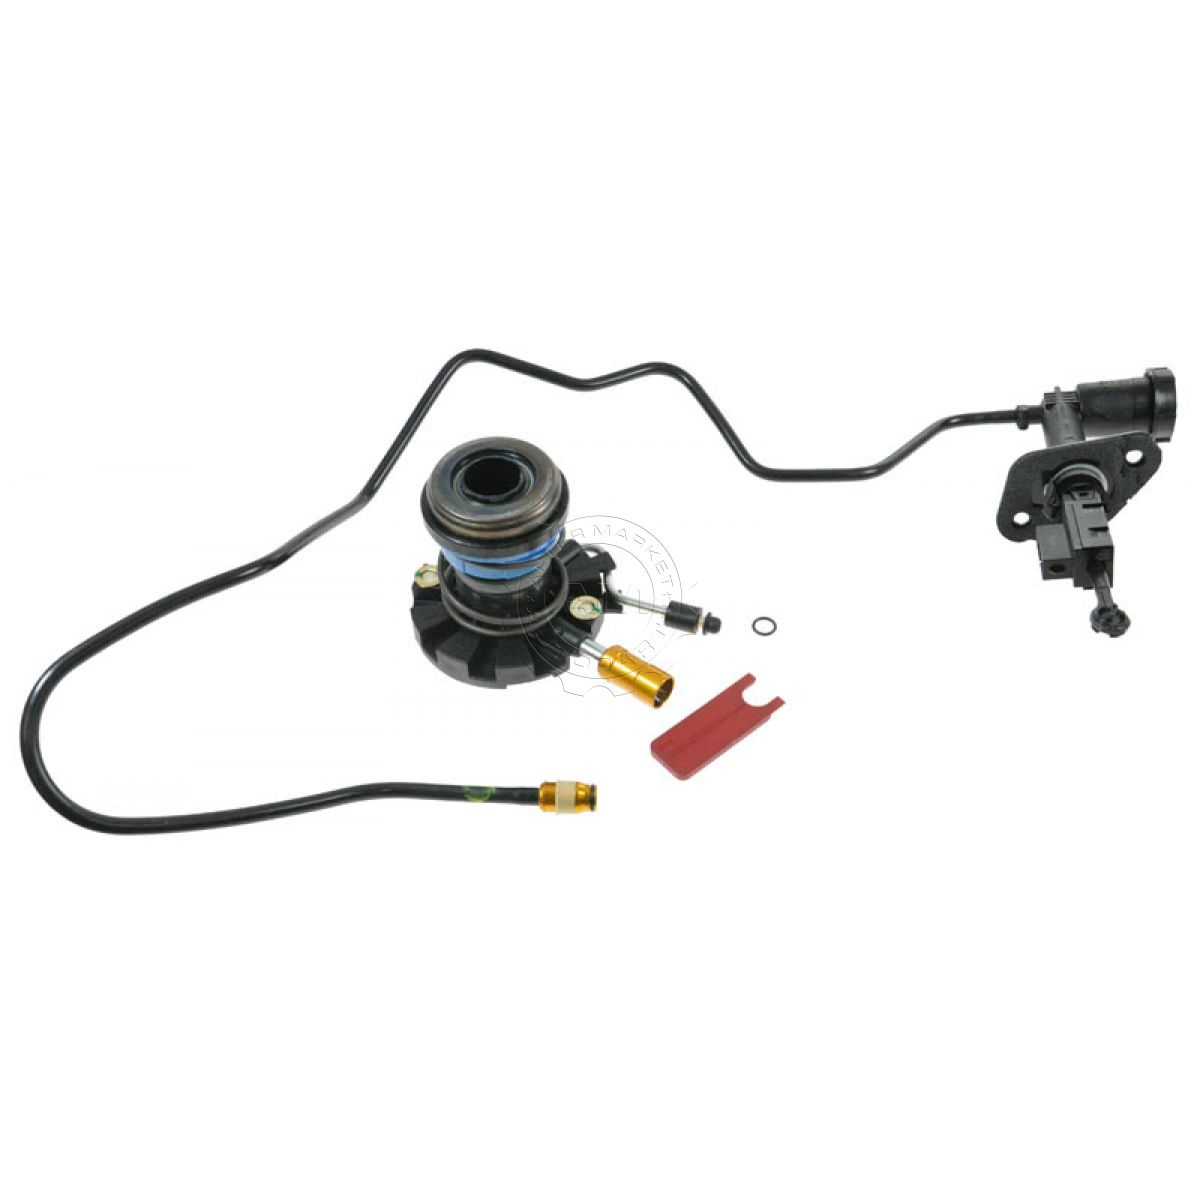 Hydraulic Lines Clutch Slave Amp Master Cylinder Kit For Bronco F150 F250 Pickup